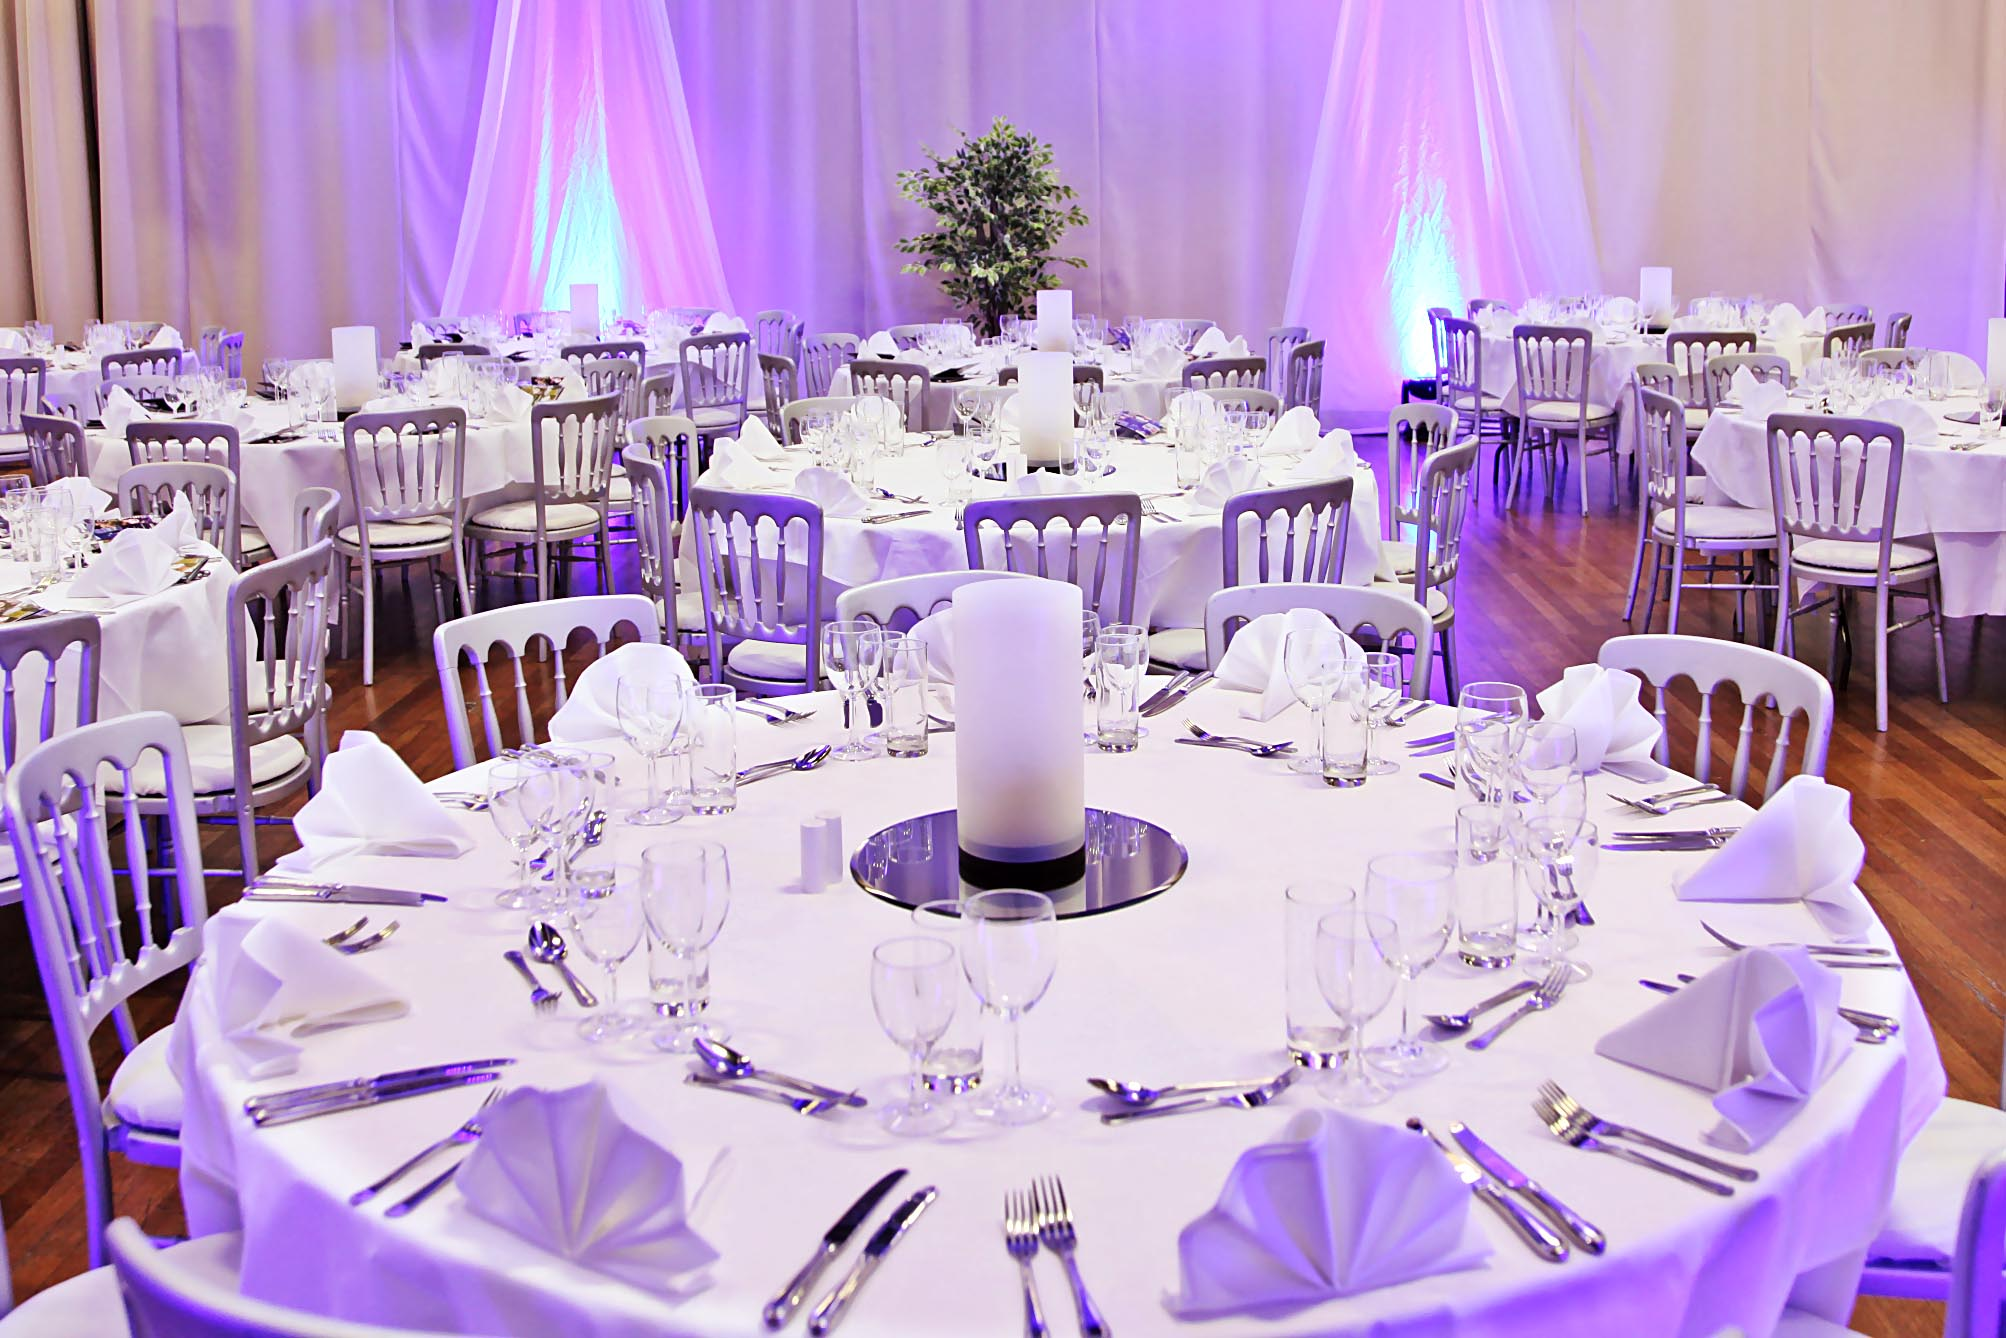 Event northumbria wedding venues north east for What is a wedding venue